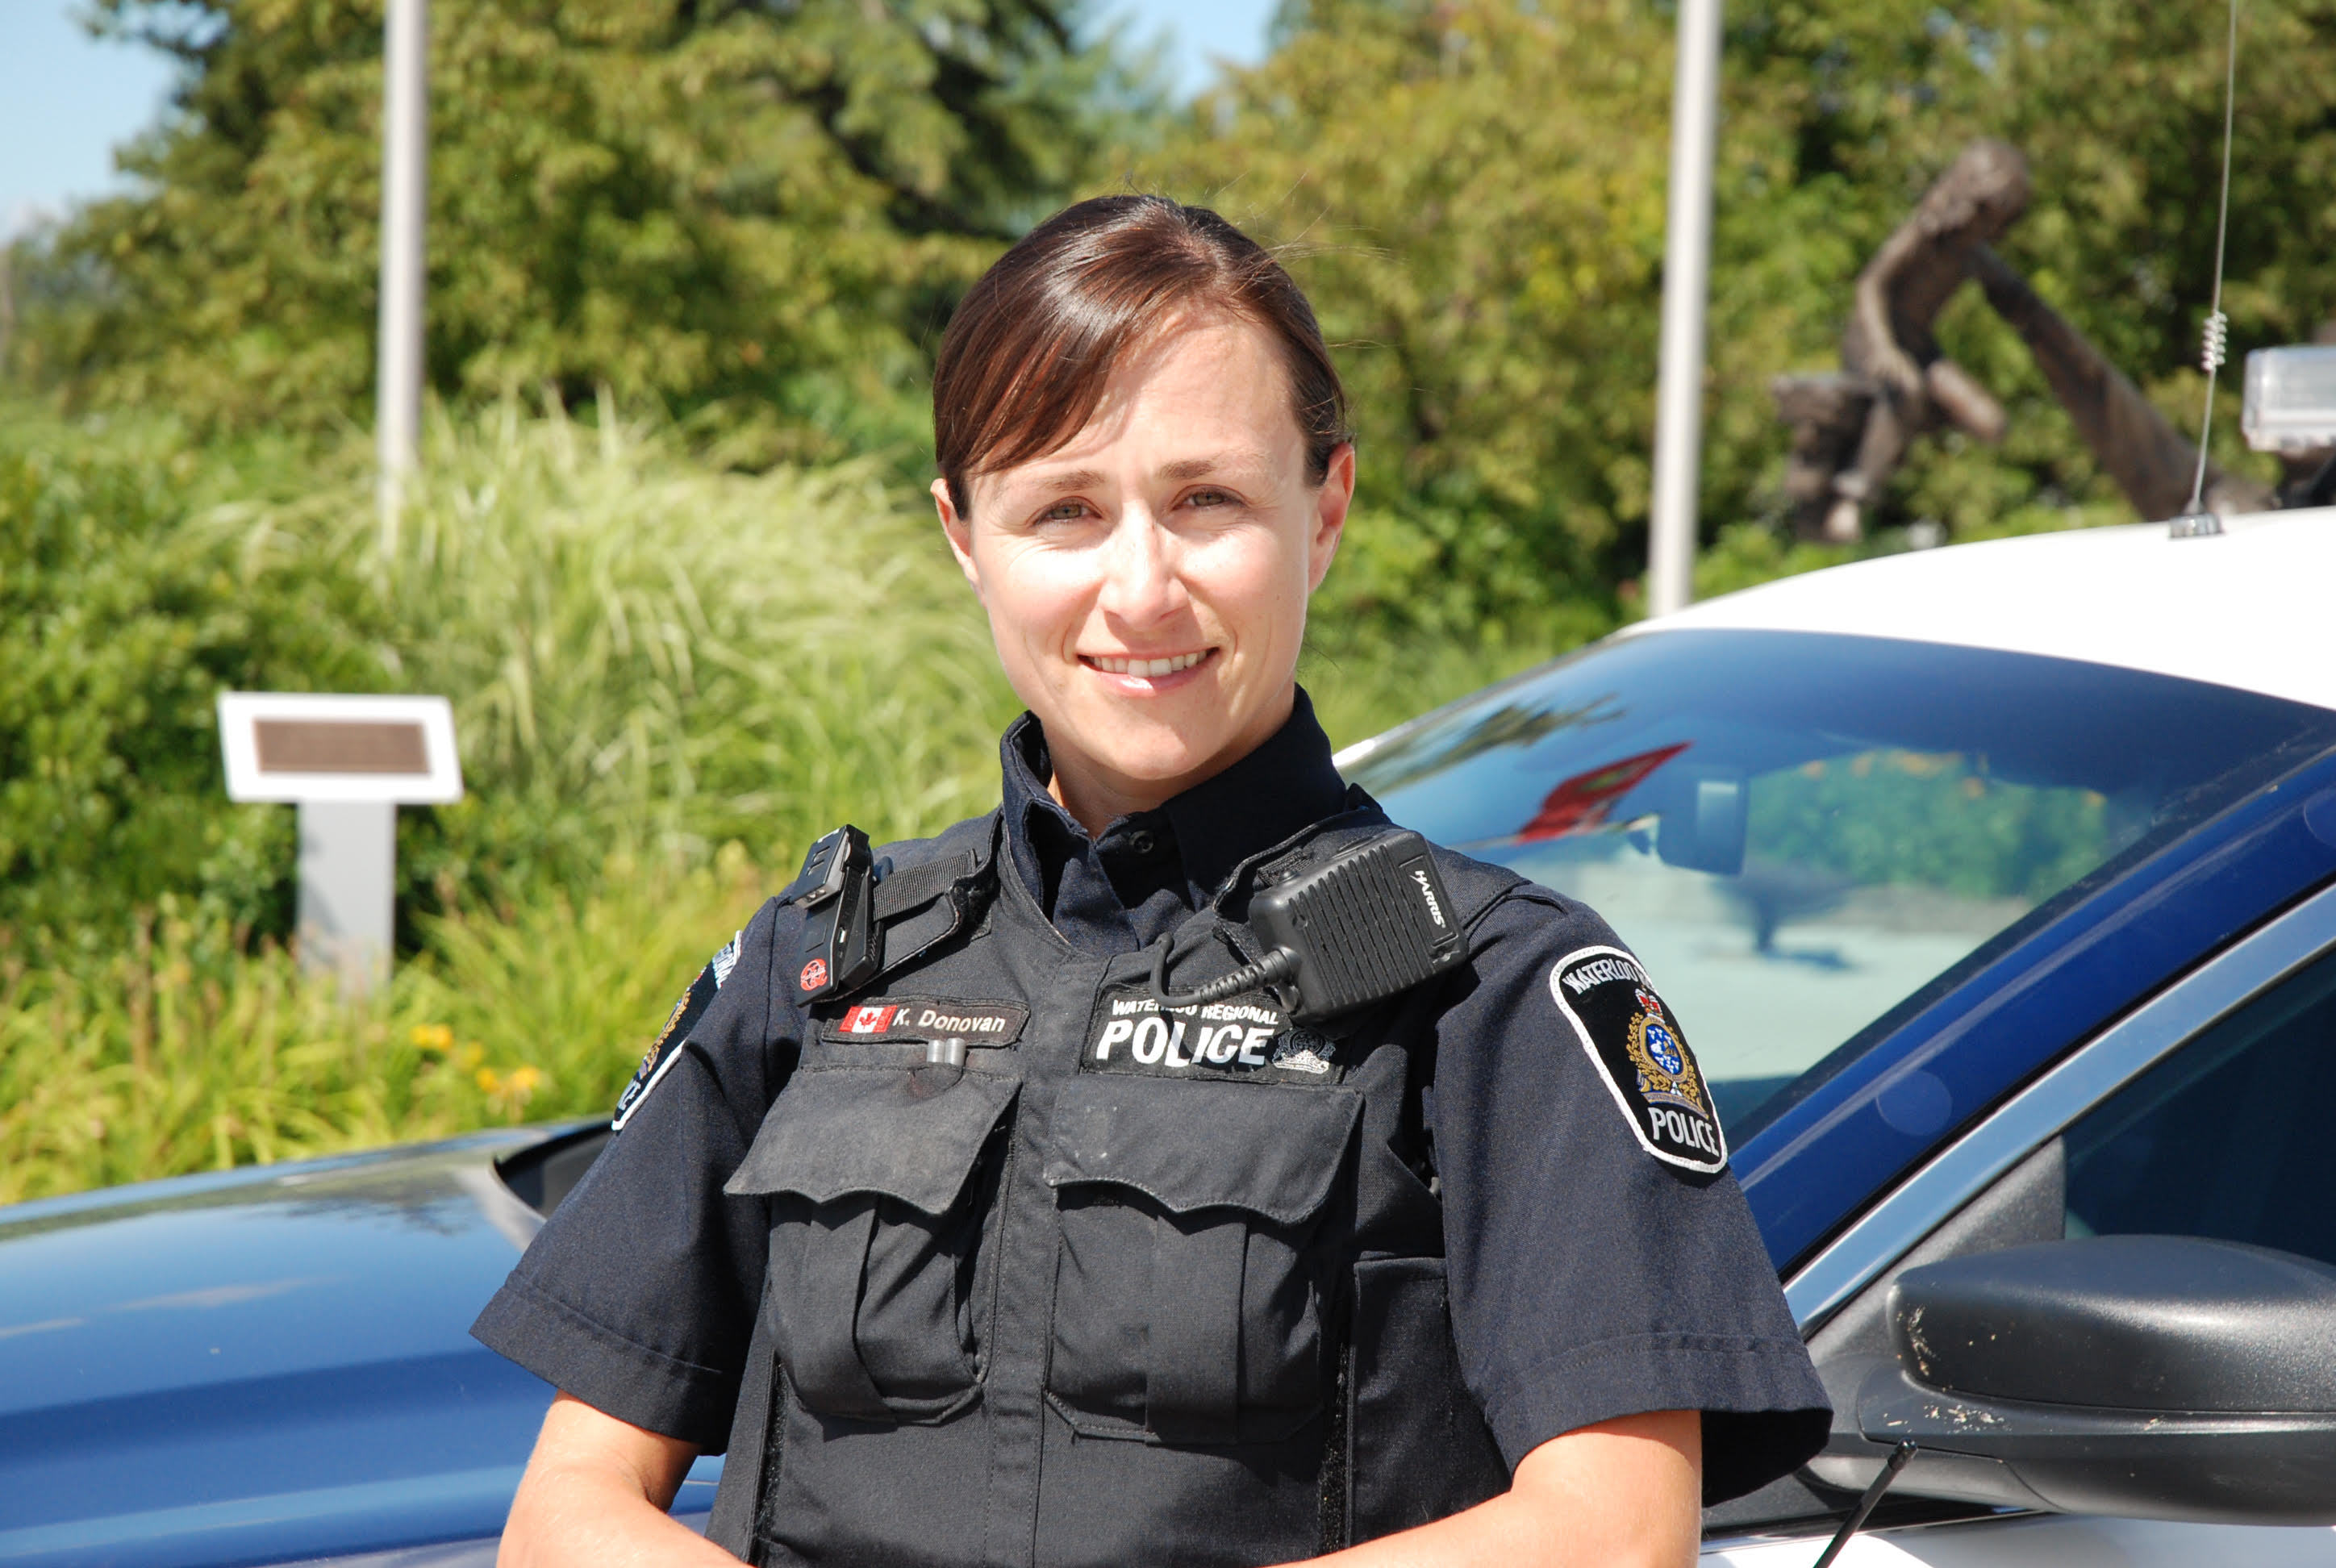 Kelly Donovan, a former Waterloo, Ont., police officer, is now an author and researches police culture. (Submitted by Kelly Donovan)